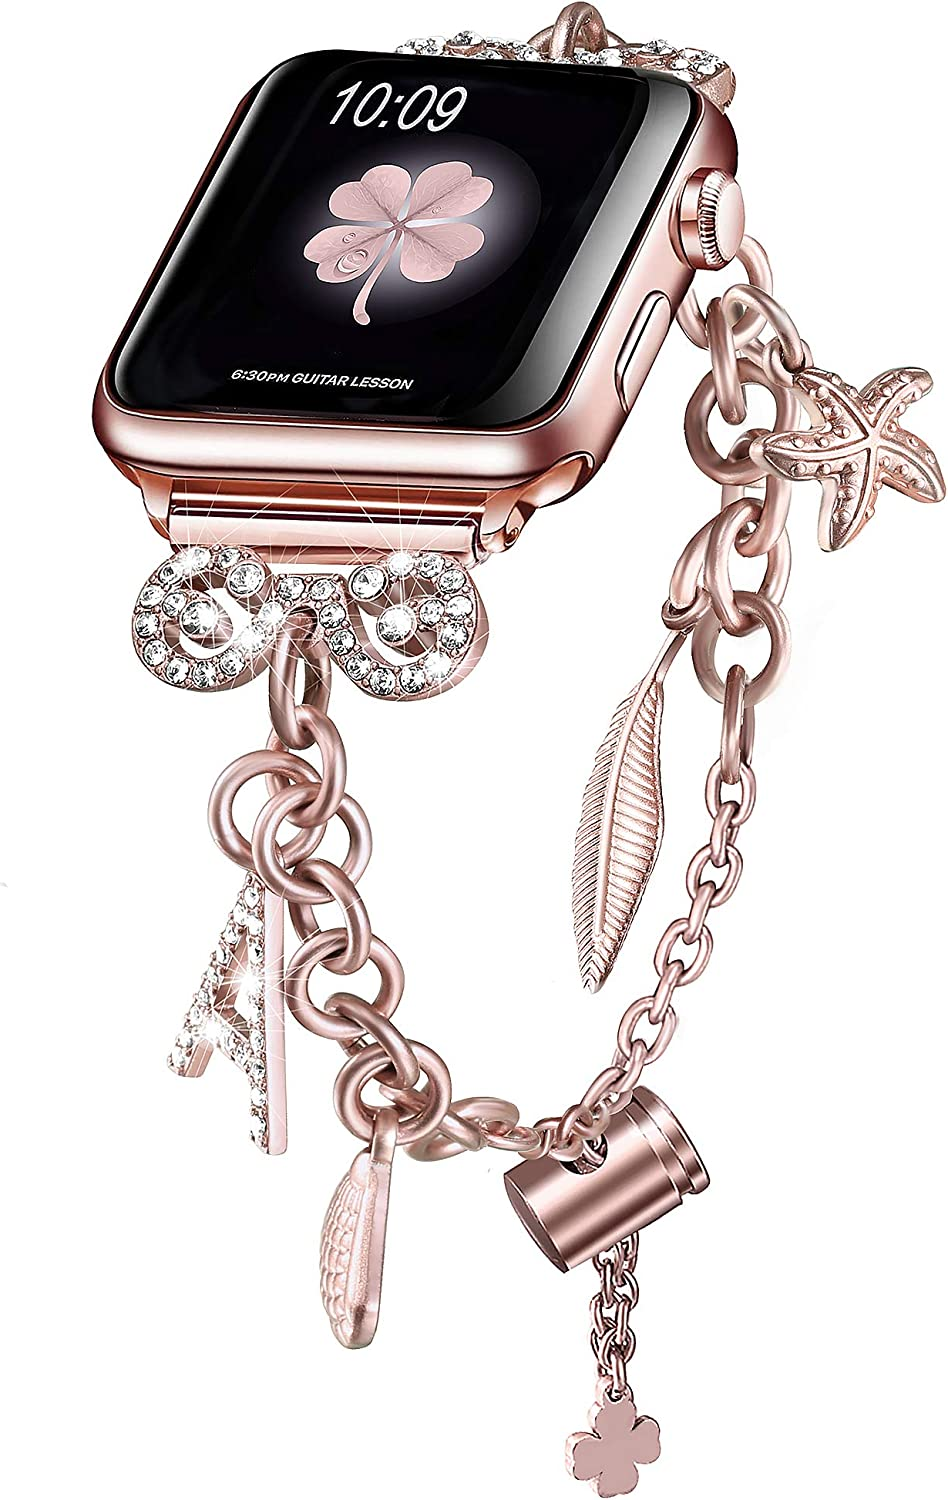 Secbolt Bling Bands Compatible with Apple Watch Bands 38mm 40mm iWatch SE Series 6/5/4/3/2/1, Women's Multi-Charm Adjustable Bracelet in Stainless Steel, Rose Gold